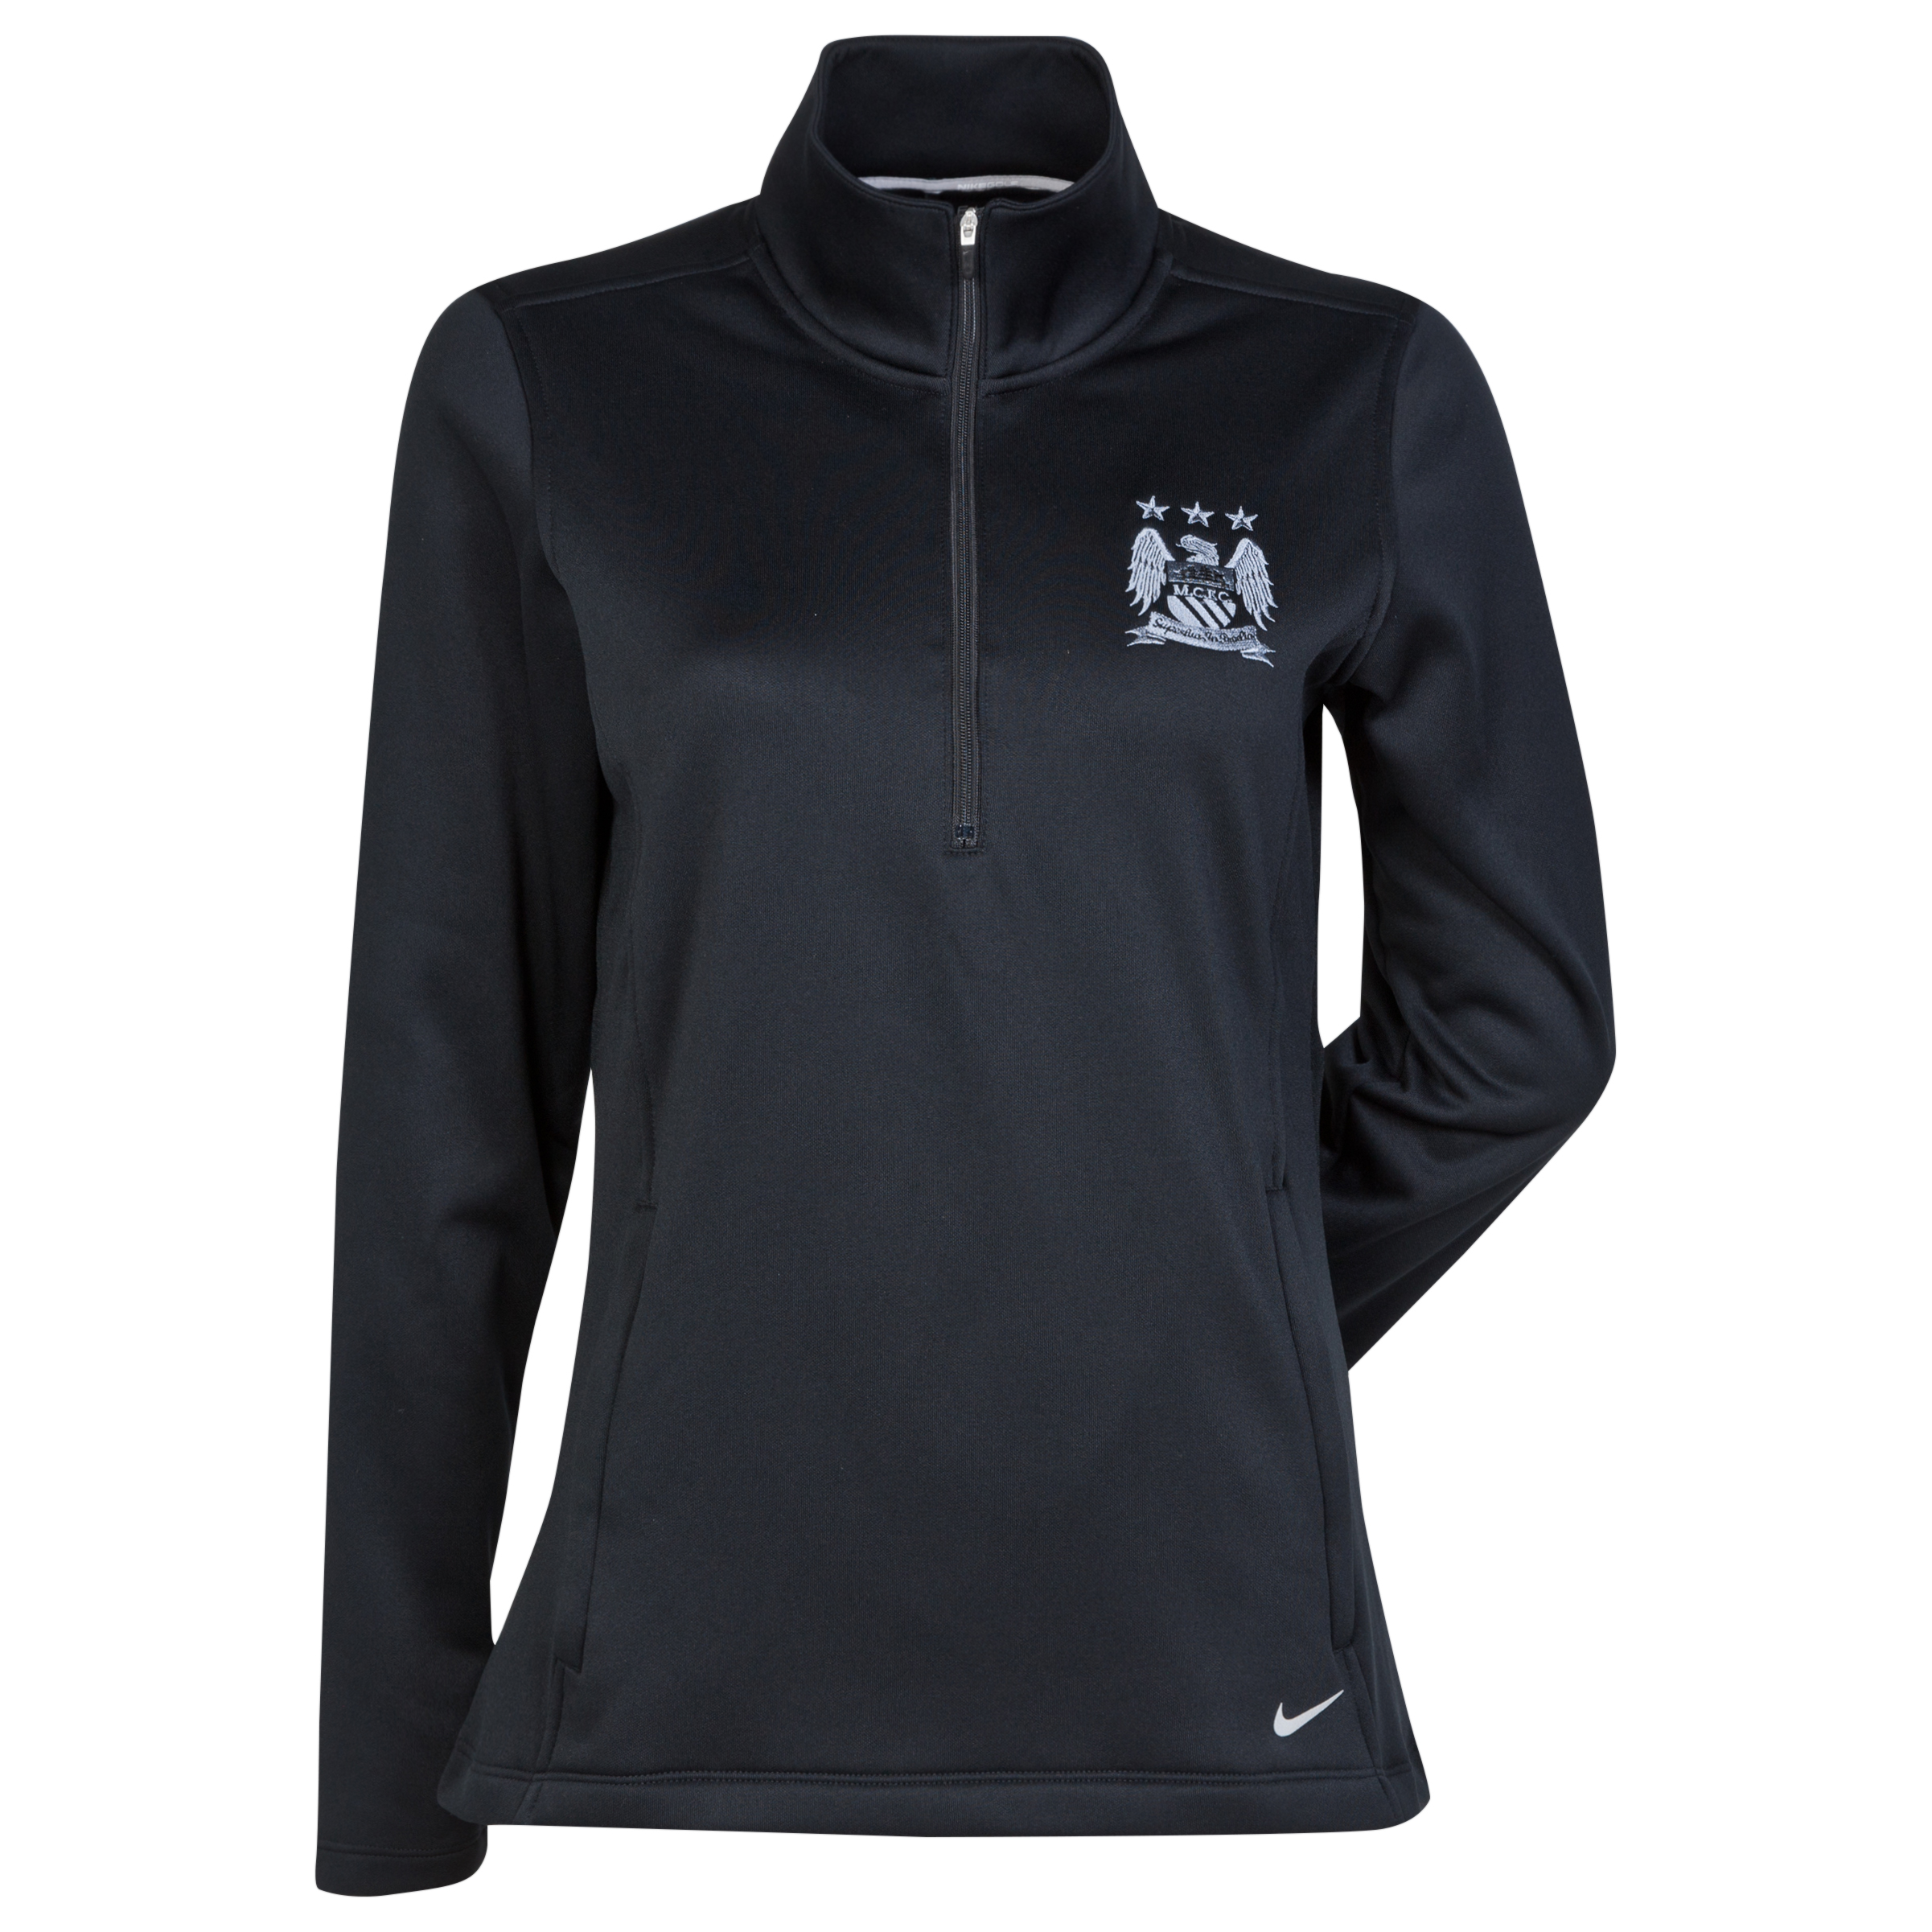 Manchester City Thermal Half Zip Top - Womens Black